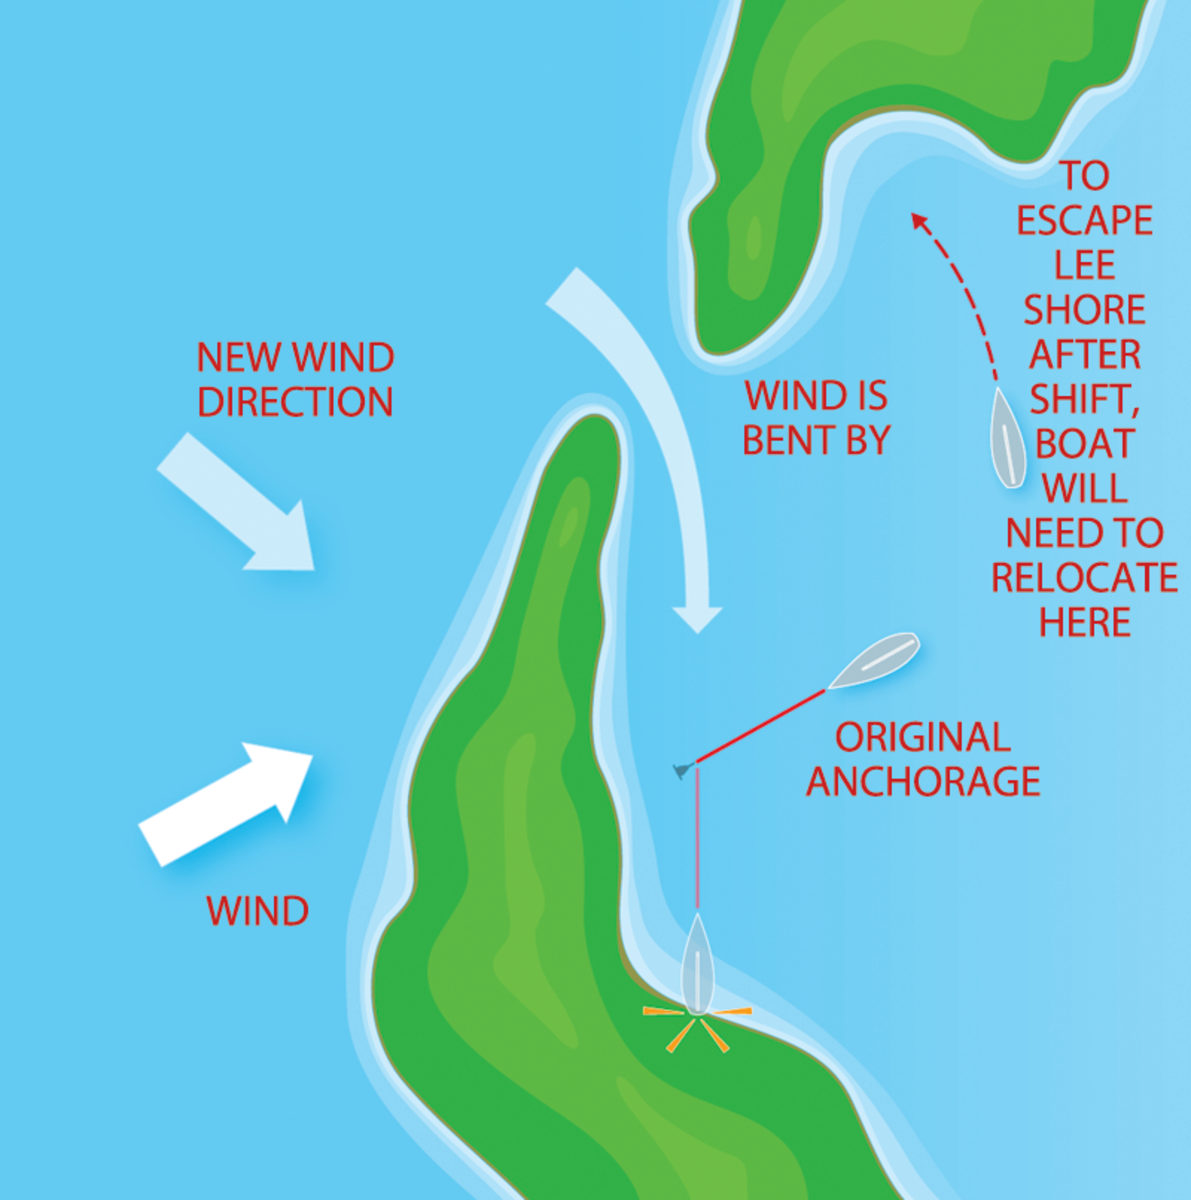 Take topography into account when choosing an anchorage and be prepared to move if necessary